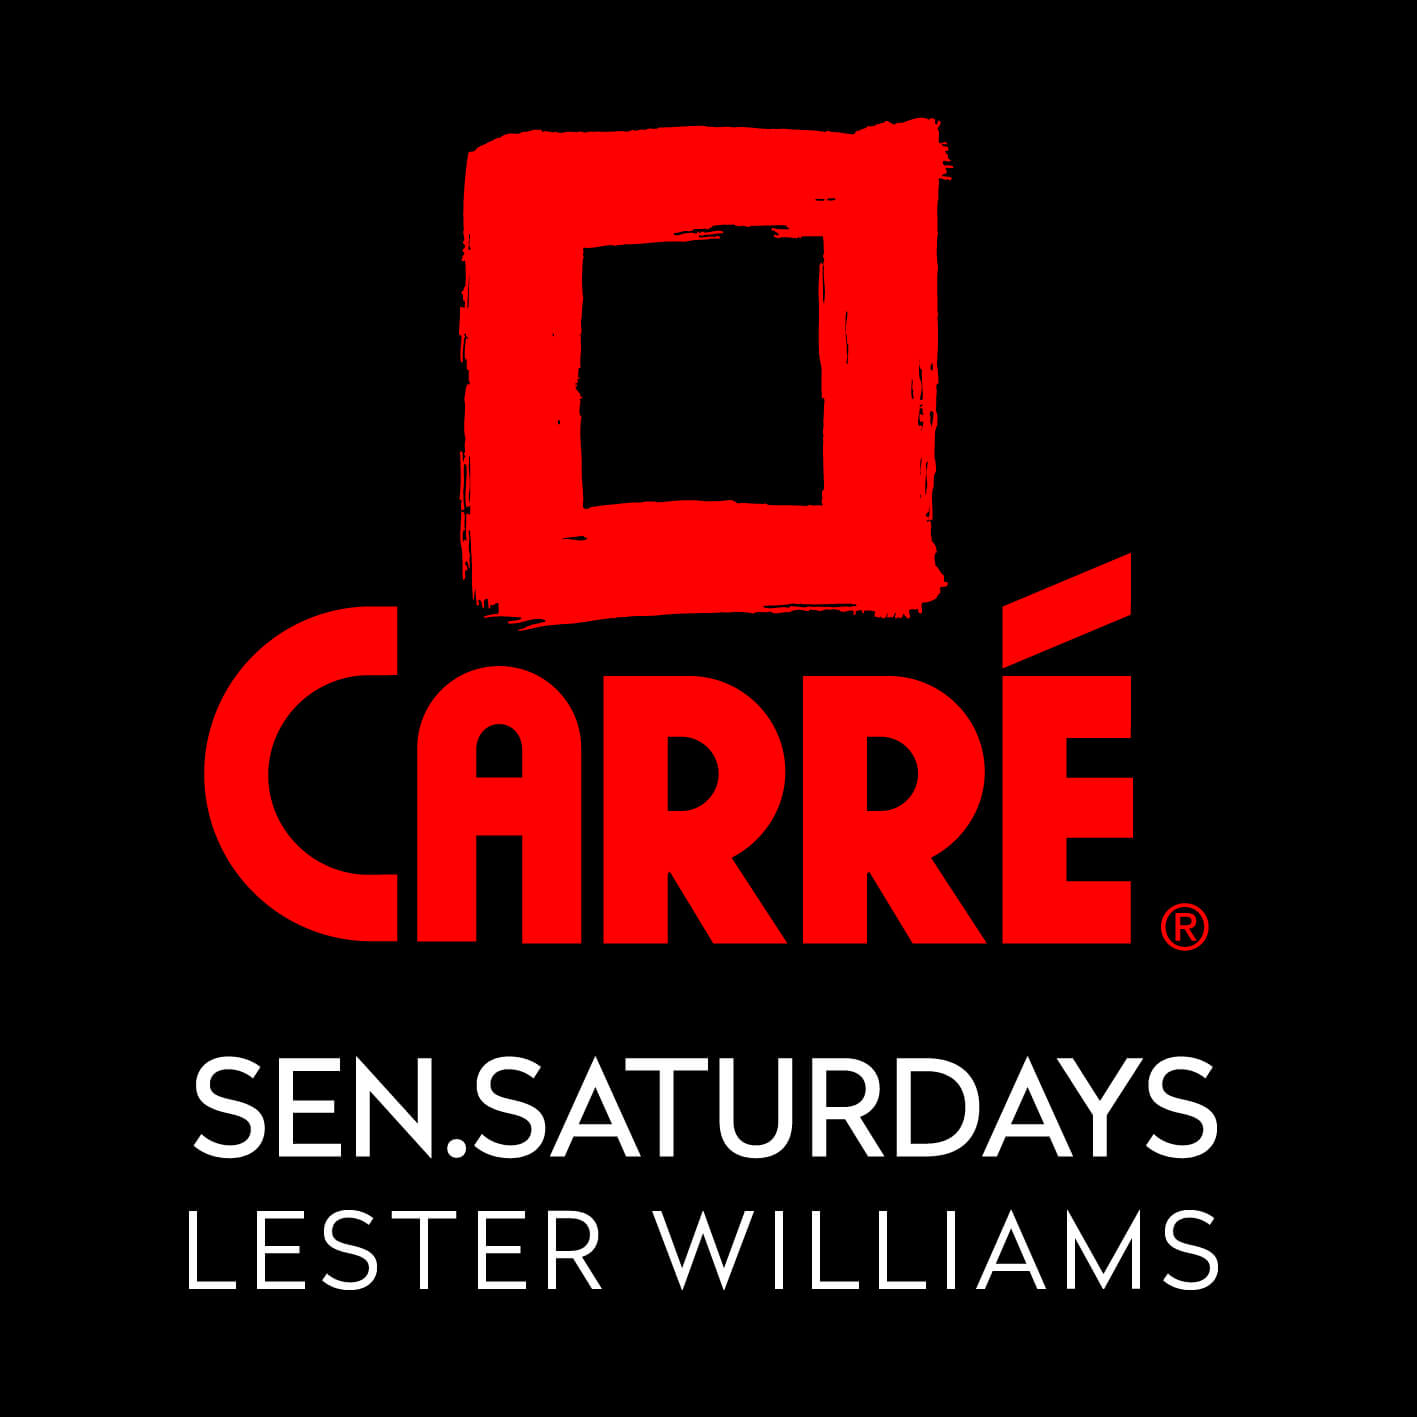 Carré Sen.Saturdays